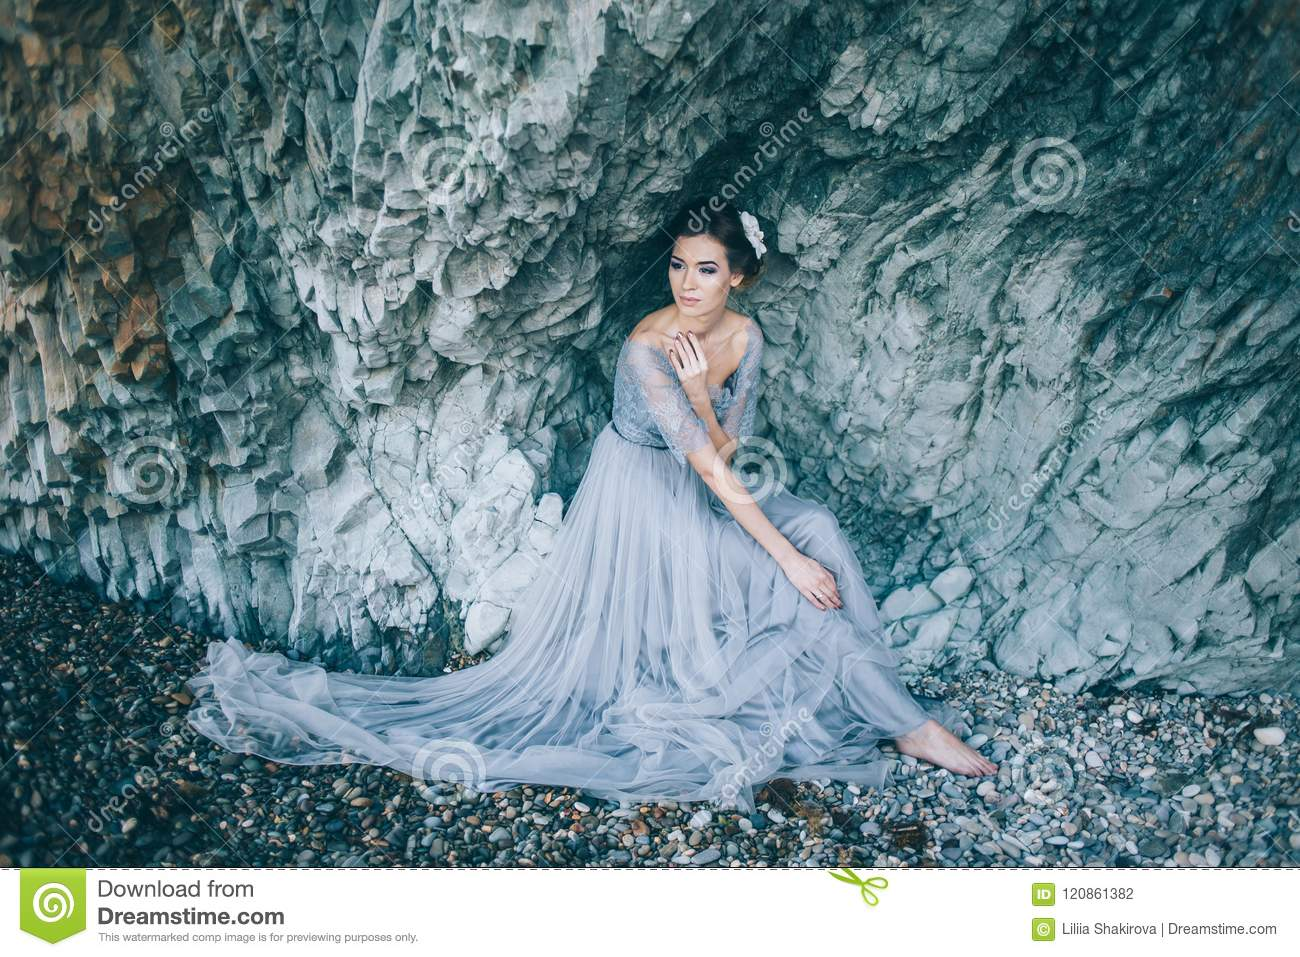 Beautiful Brunette Woman In A Long Wedding Dress On The Beach Stock Photo Image Of Happy People 120861382,Sepedi Traditional Wedding Dresses For Bridesmaids